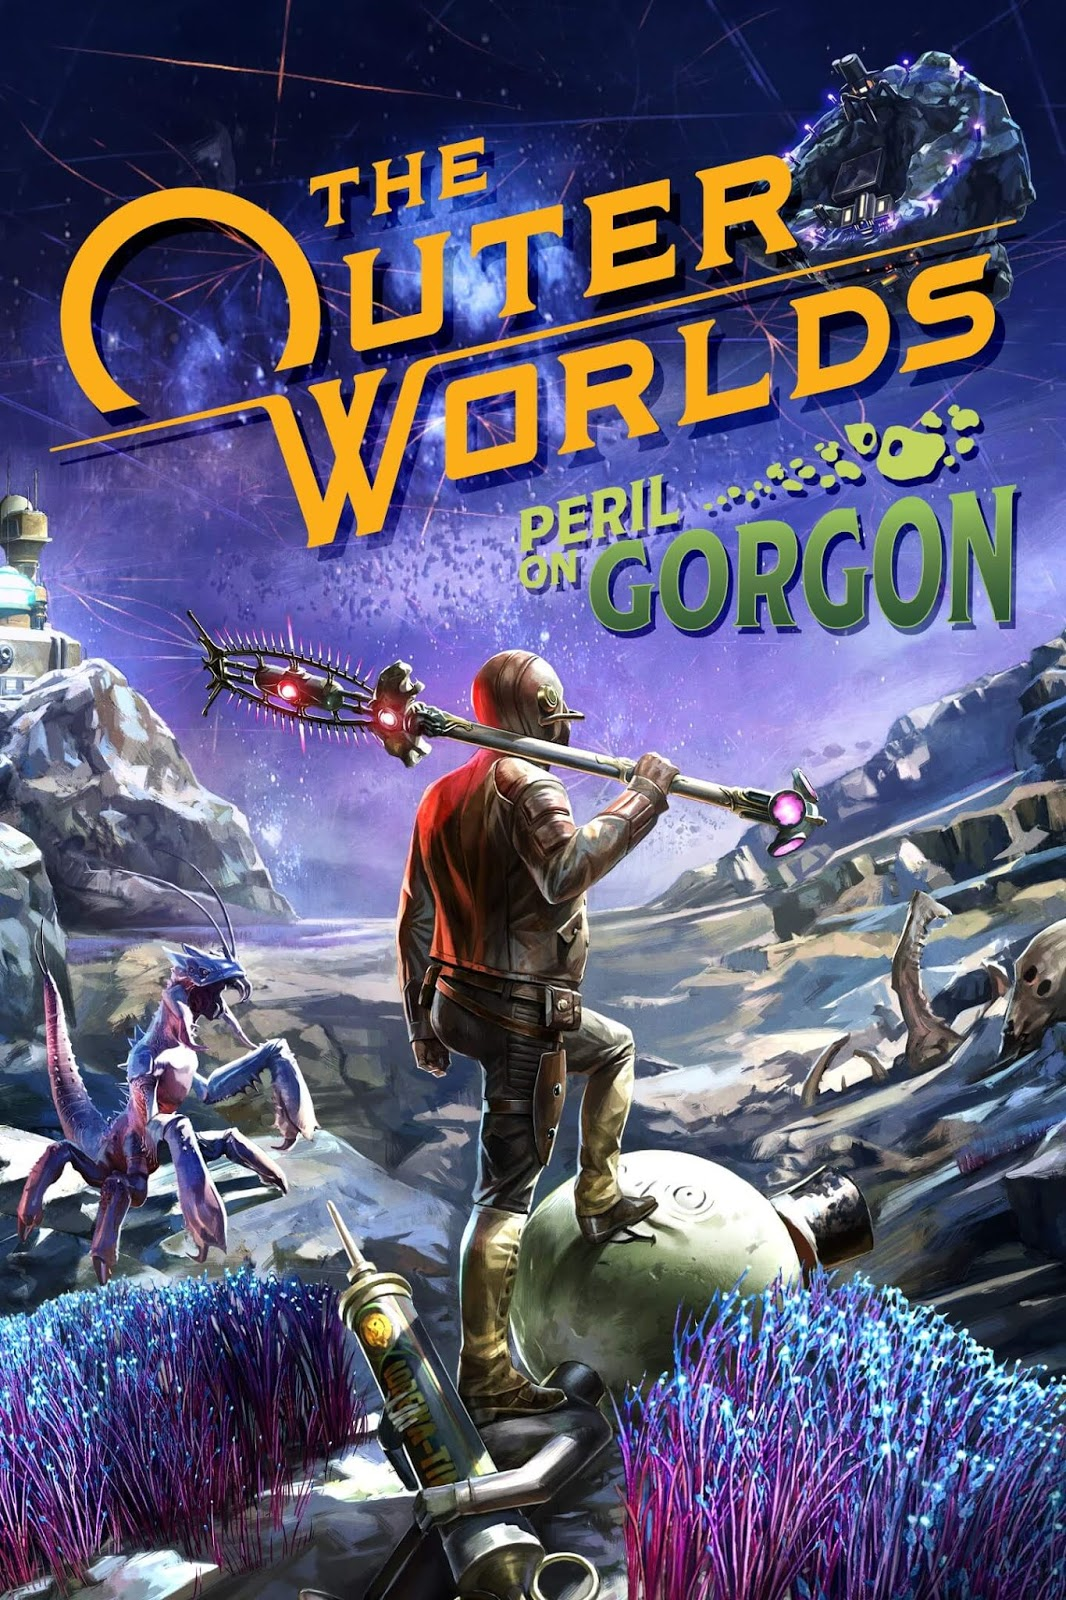 the outer worlds peril on gorgon,the outer worlds,peril on gorgon,the outer worlds dlc,outer worlds peril on gorgon,the outer worlds peril on gorgon review,the outer worlds: peril on gorgon,outer worlds peril on gorgon price,outer worlds peril on gorgon review,peril on gorgon pc,the outer worlds review,peril on gorgon review,outer worlds,the outer worlds peril on gorgon length,the outer worlds peril on gorgon trailer,the outer worlds peril on gorgon how to start